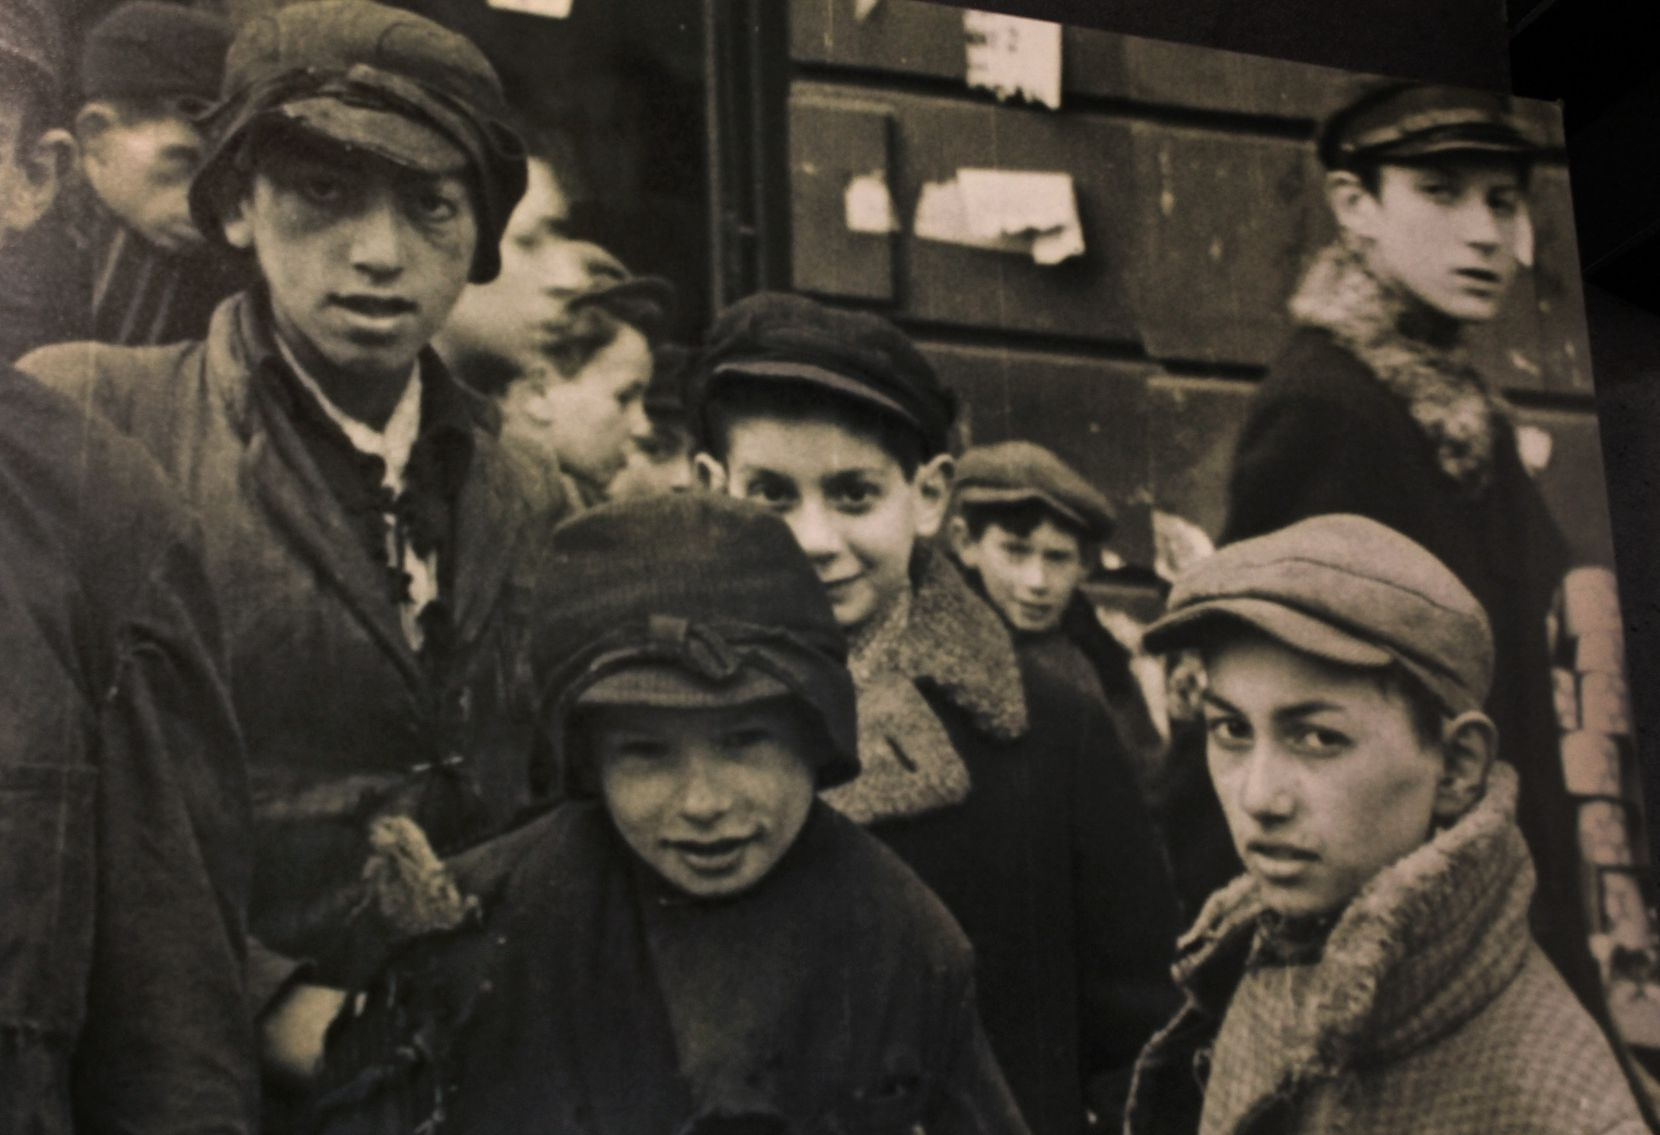 Holocaust survivor Max Glauben (center/third from left, partially obscured) is pictured with other boys in the Warsaw Ghetto prior to his family's deportation to the concentration camps. (Dallas Holocaust and Human Rights Museum)